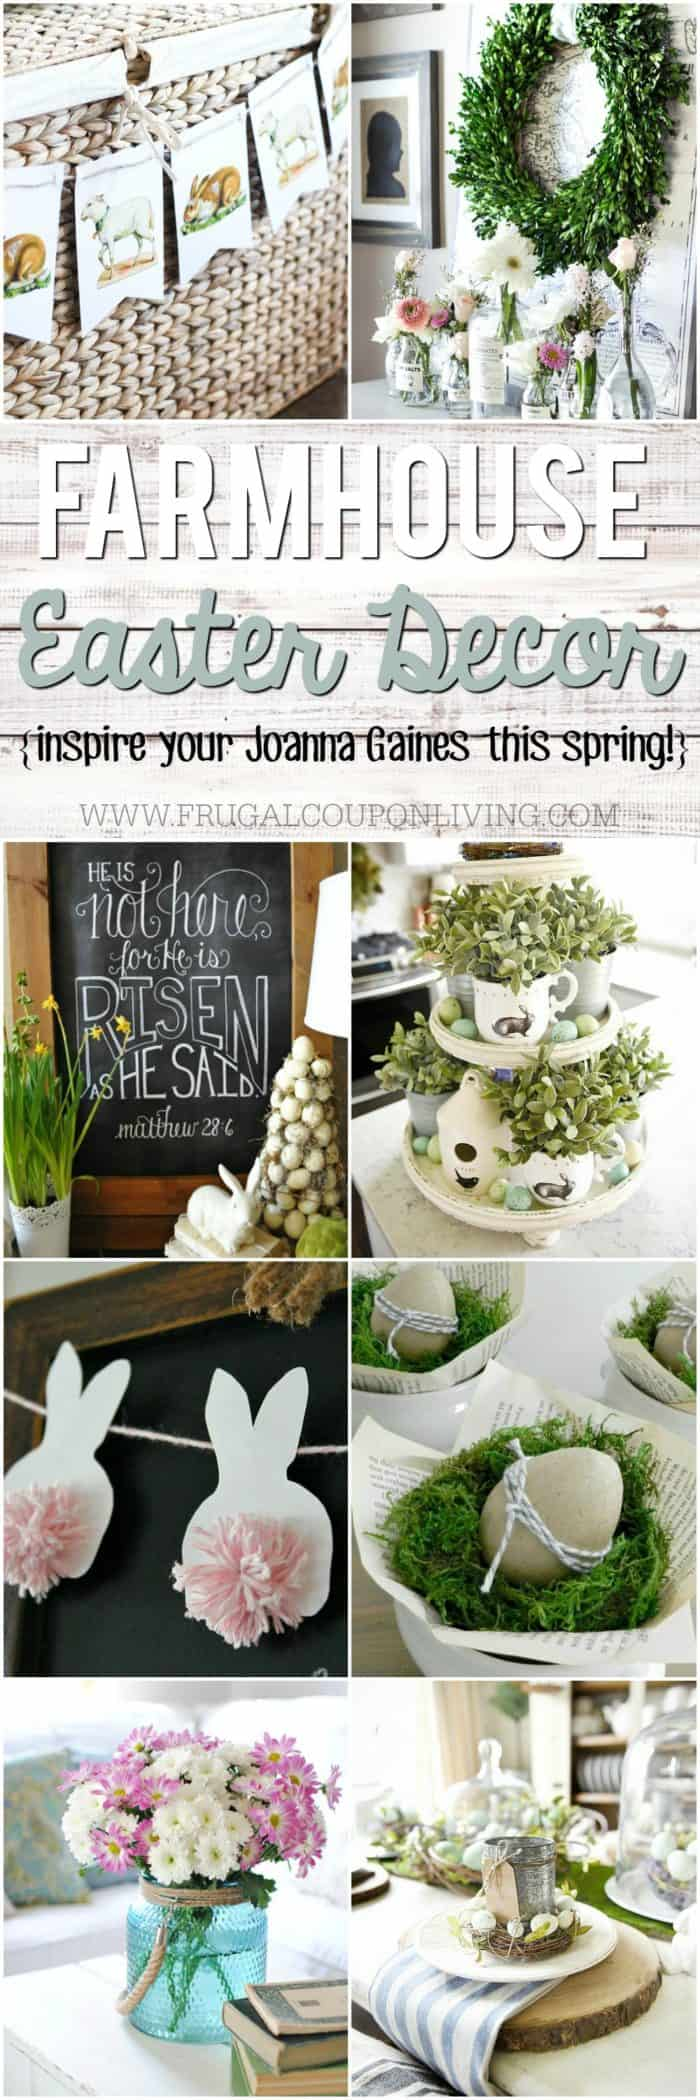 Inspiring Farmhouse Easter Decor